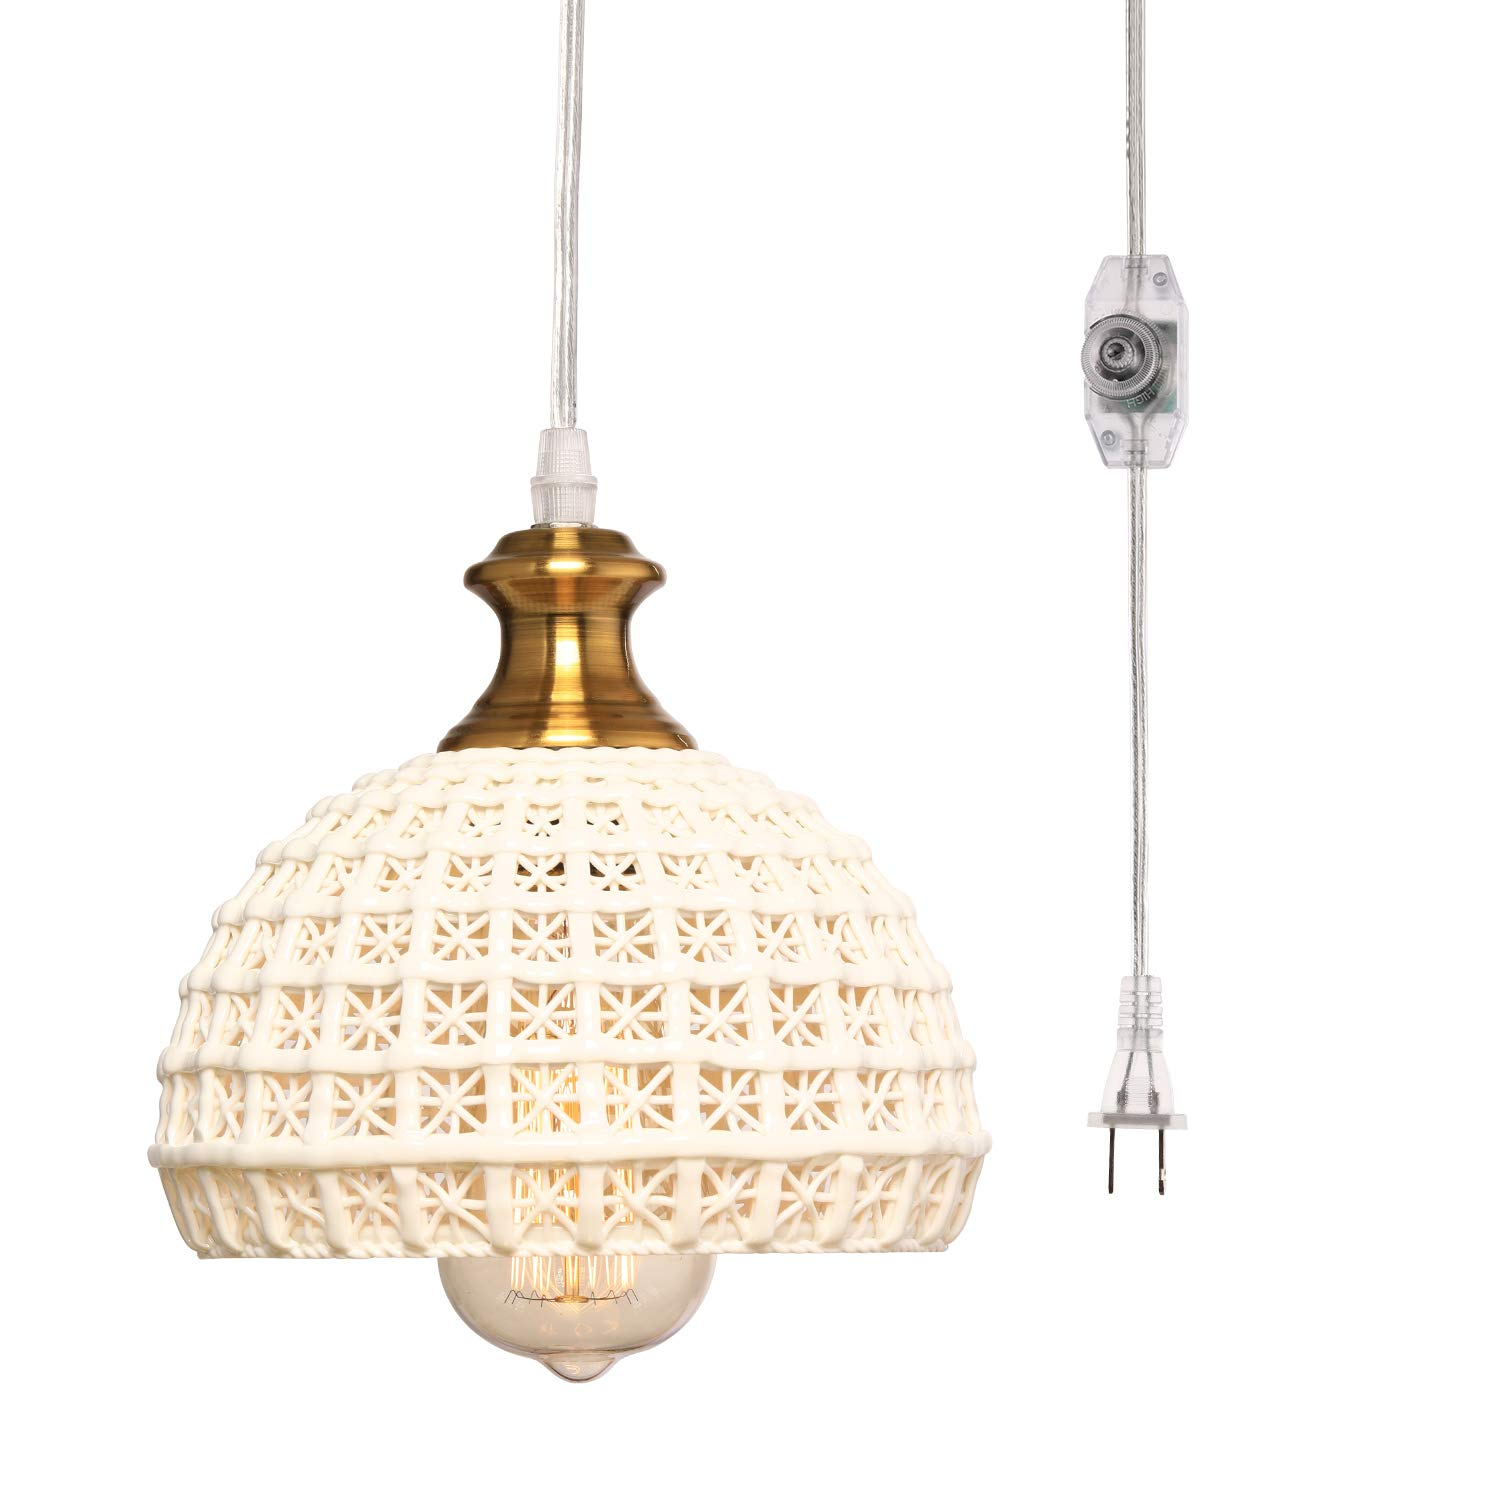 HMVPL Ceramic Plug in Pendant Light Fixture, Unique Swag Ceiling Lamp with 16.4 Ft Hanging Cord and On/Off Dimmable Switch for Kitchen Island Table Dining Room Bedroom Entryway